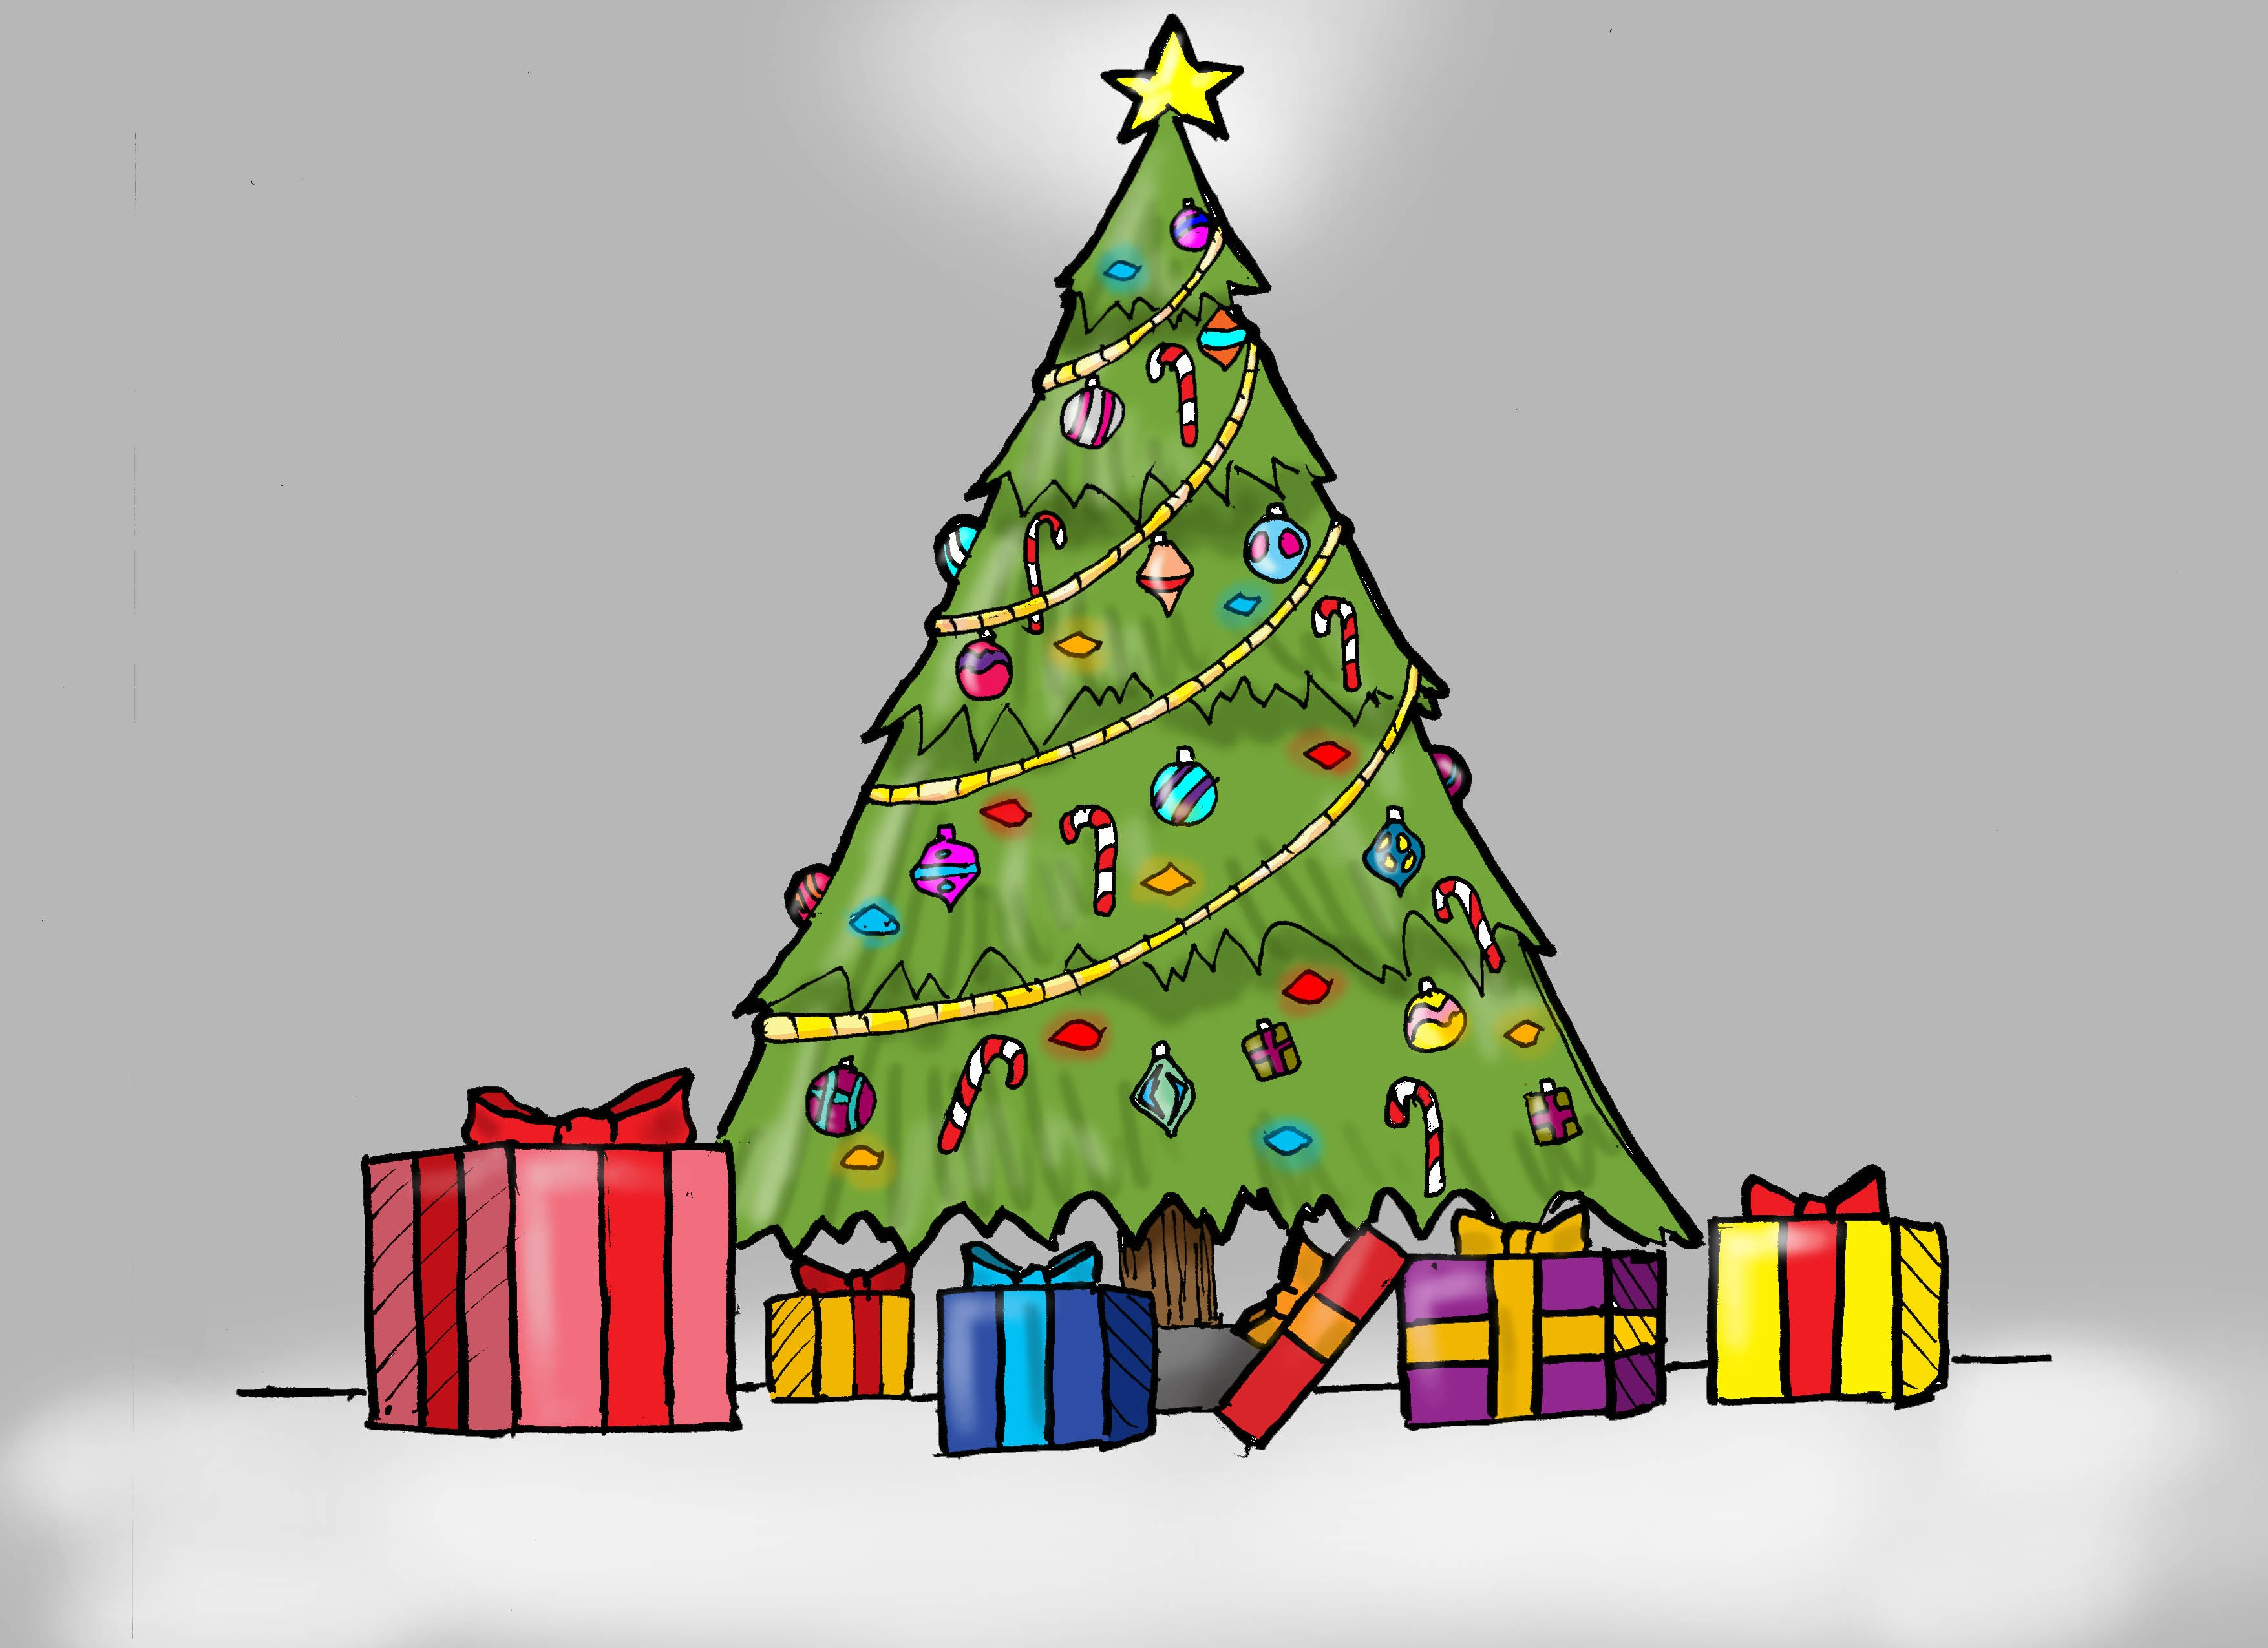 3509x2550 How To Draw A Christmas Tree With Presents (For Kids)